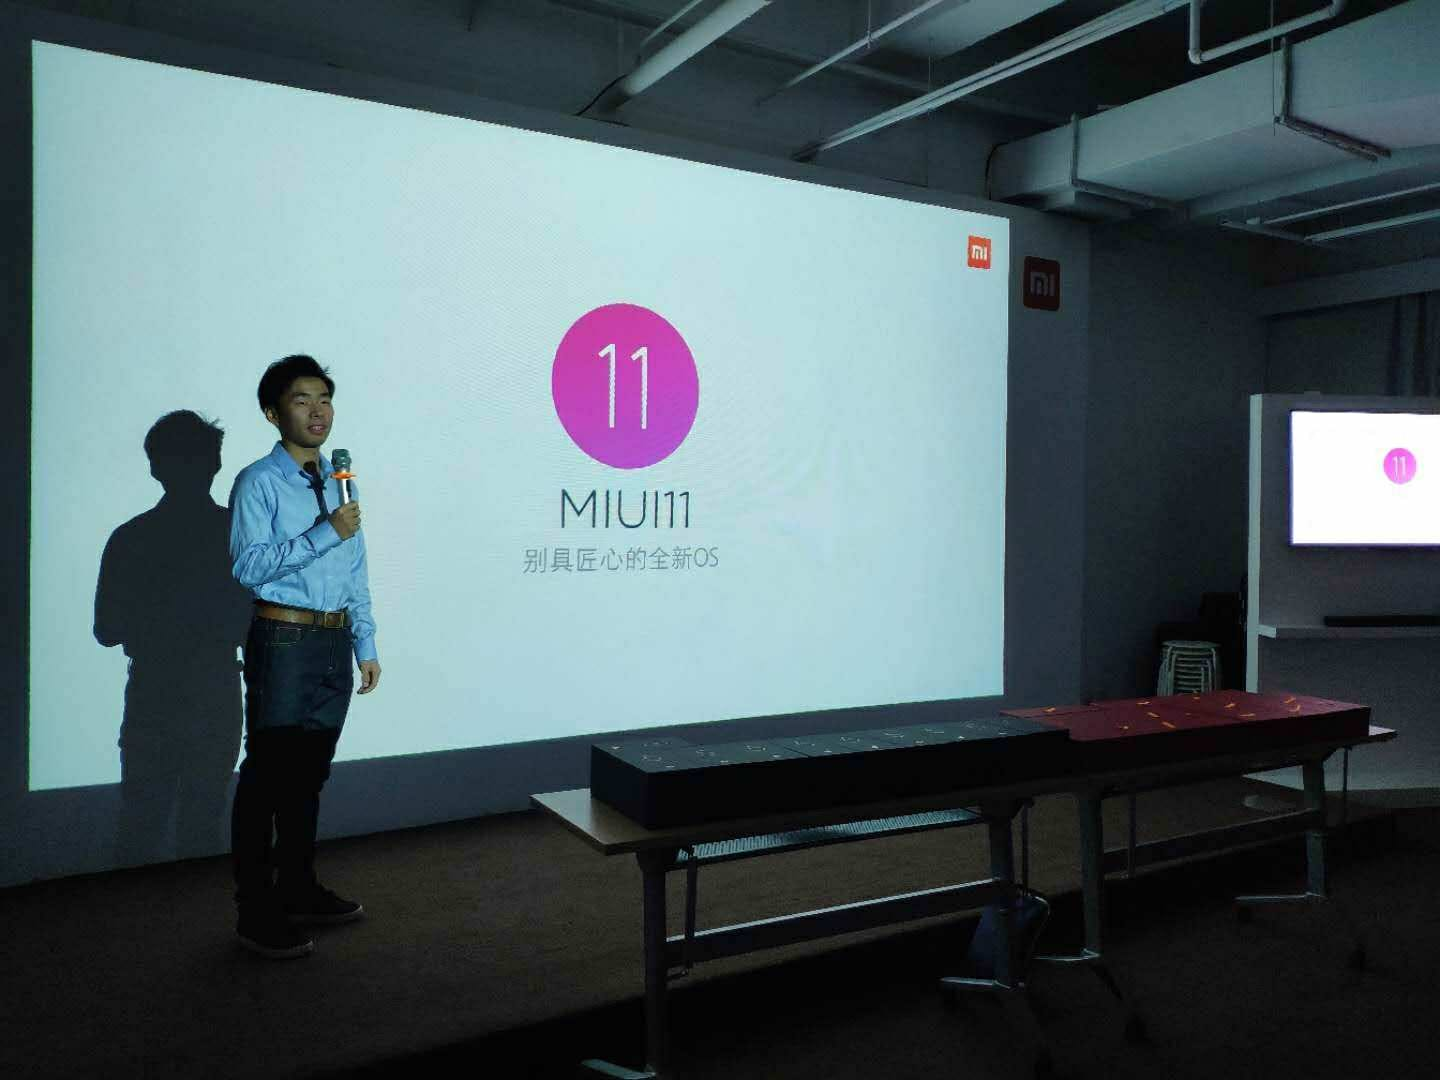 List of Xiaomi smartphones that will upgrade to MIUI 11